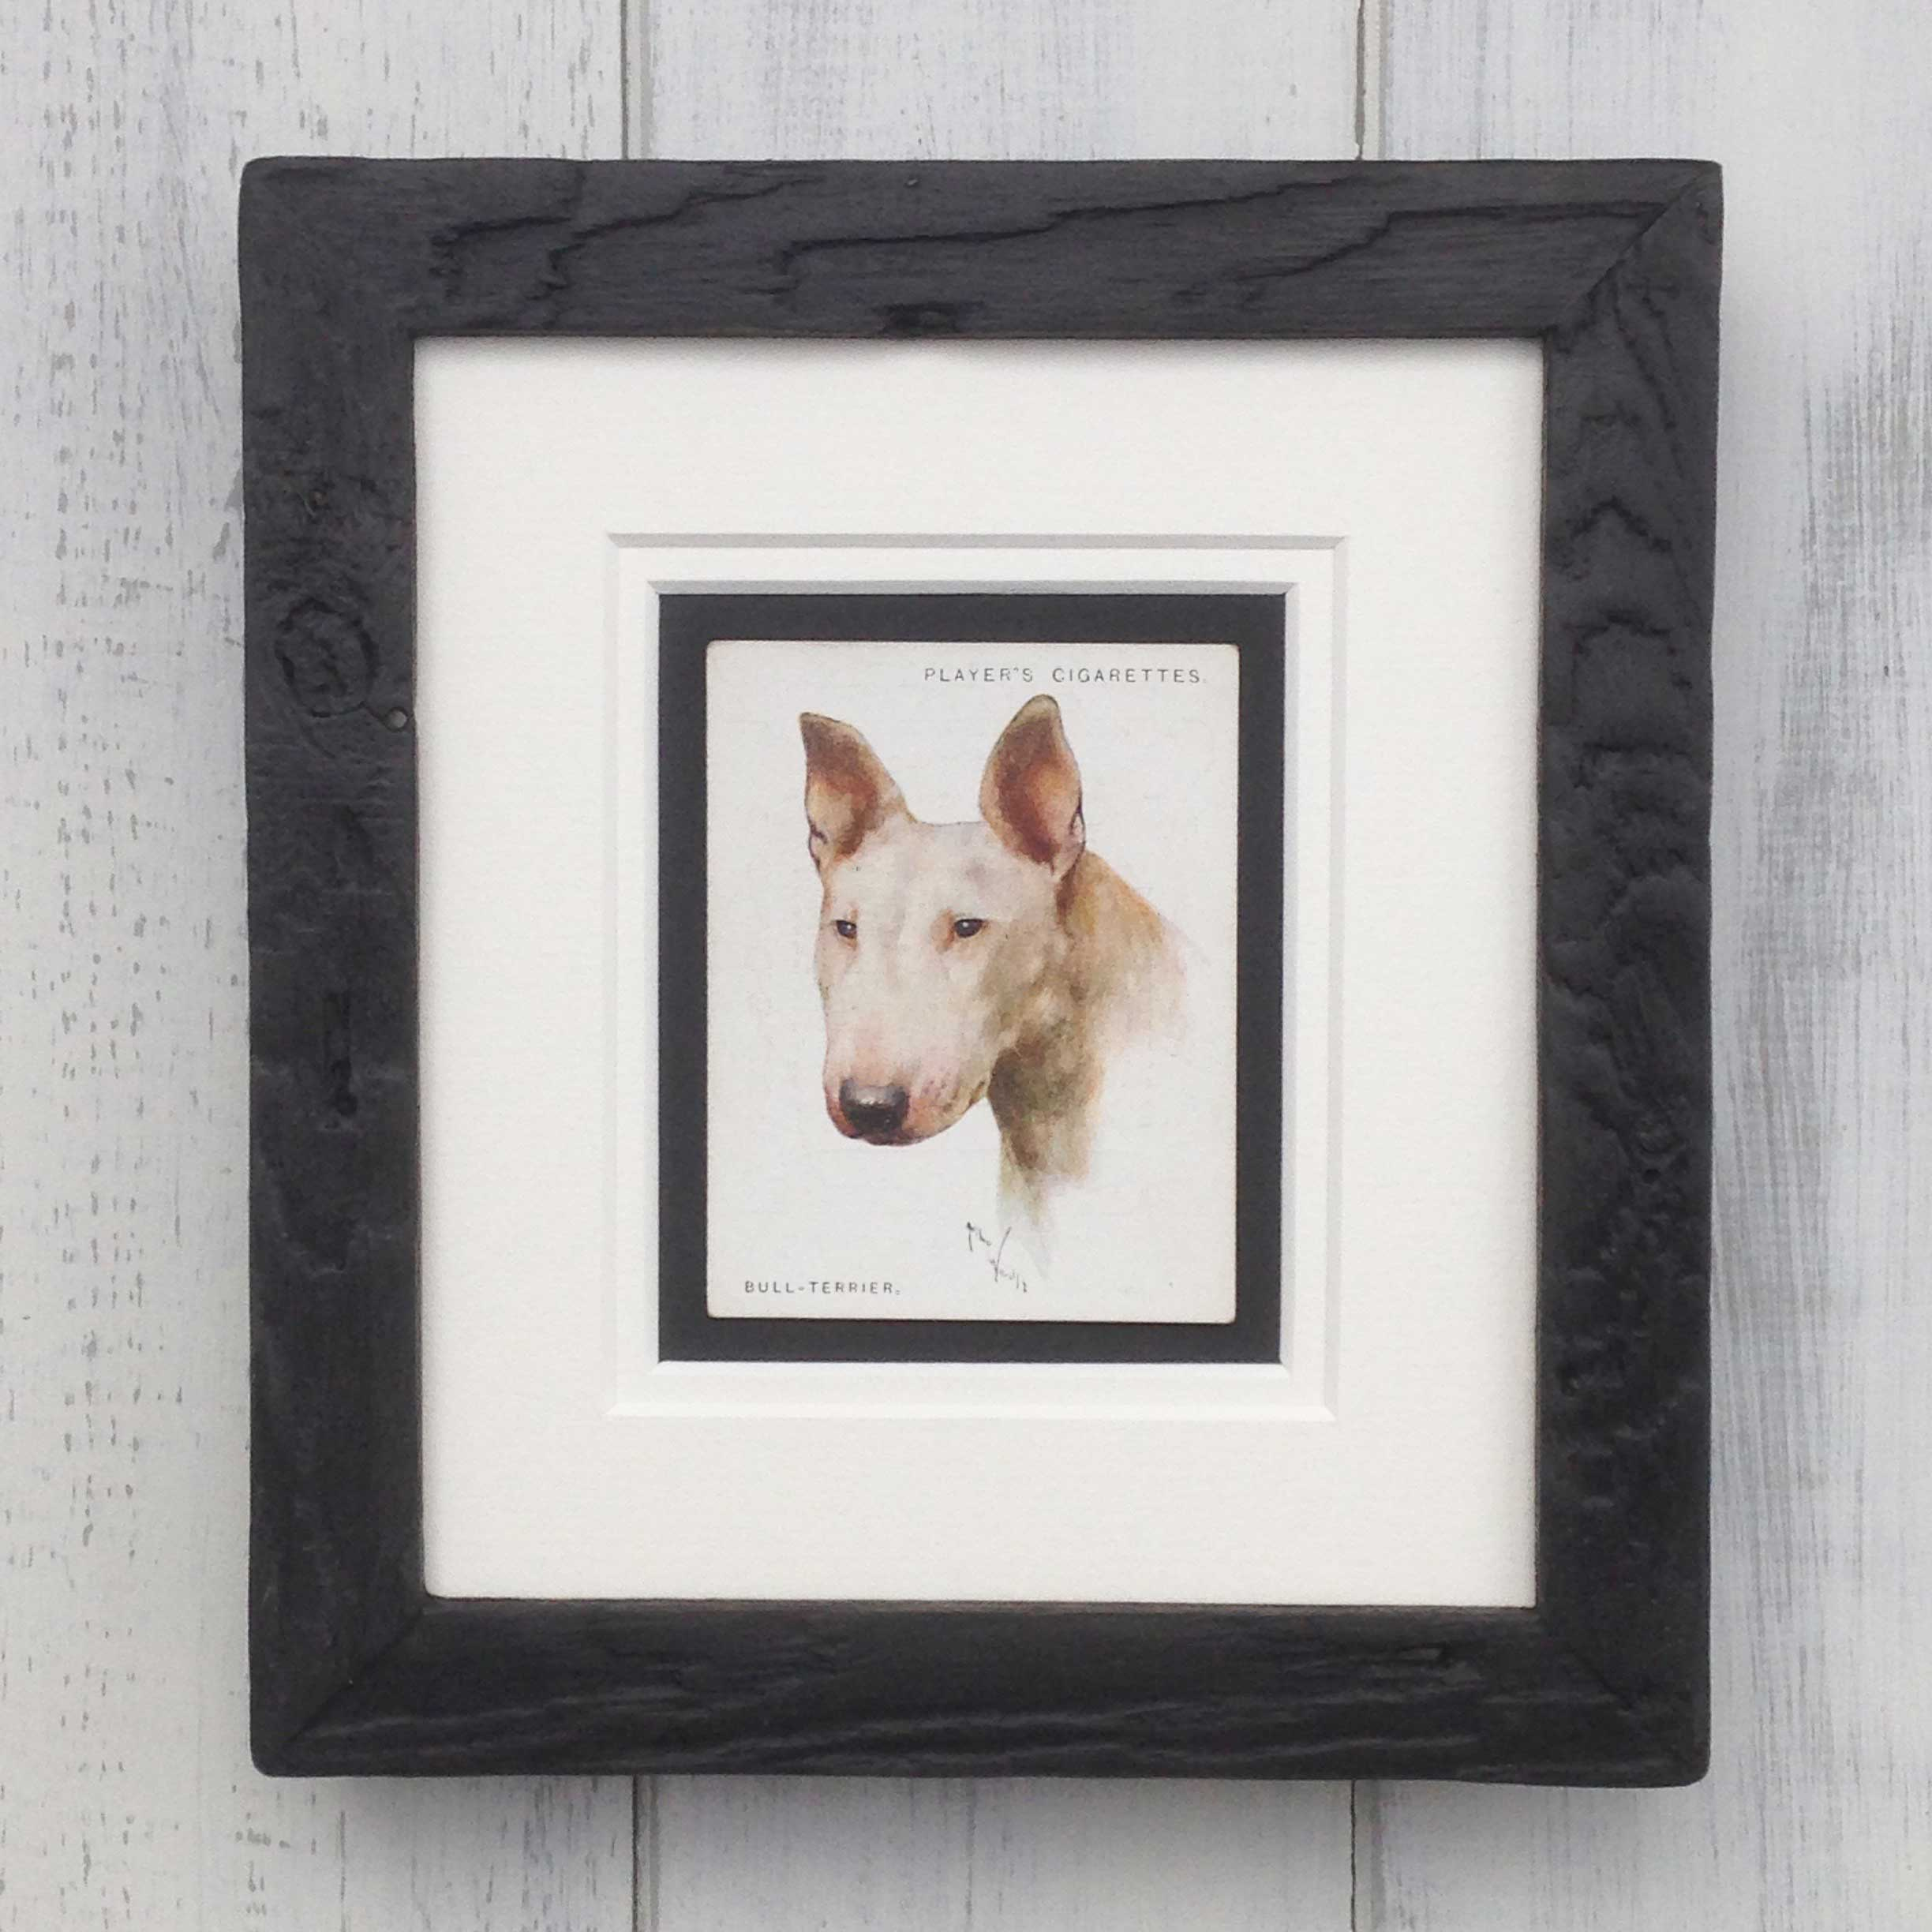 Vintage Gifts for Bull Terrier Lovers - The Enlightened Hound